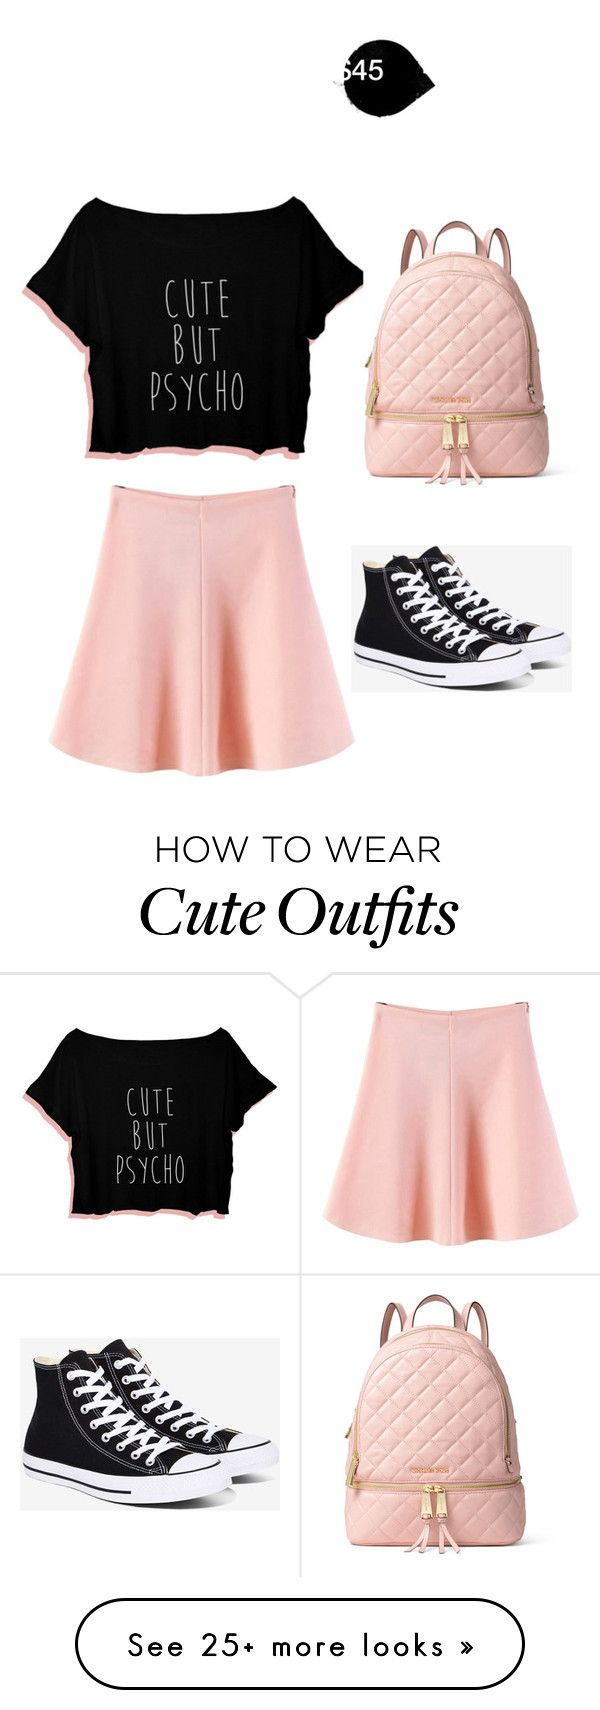 My First Polyvore Outfit by rileylowe226 on Polyvore featuring WithChic, Converse and MICHAEL Michael Kors